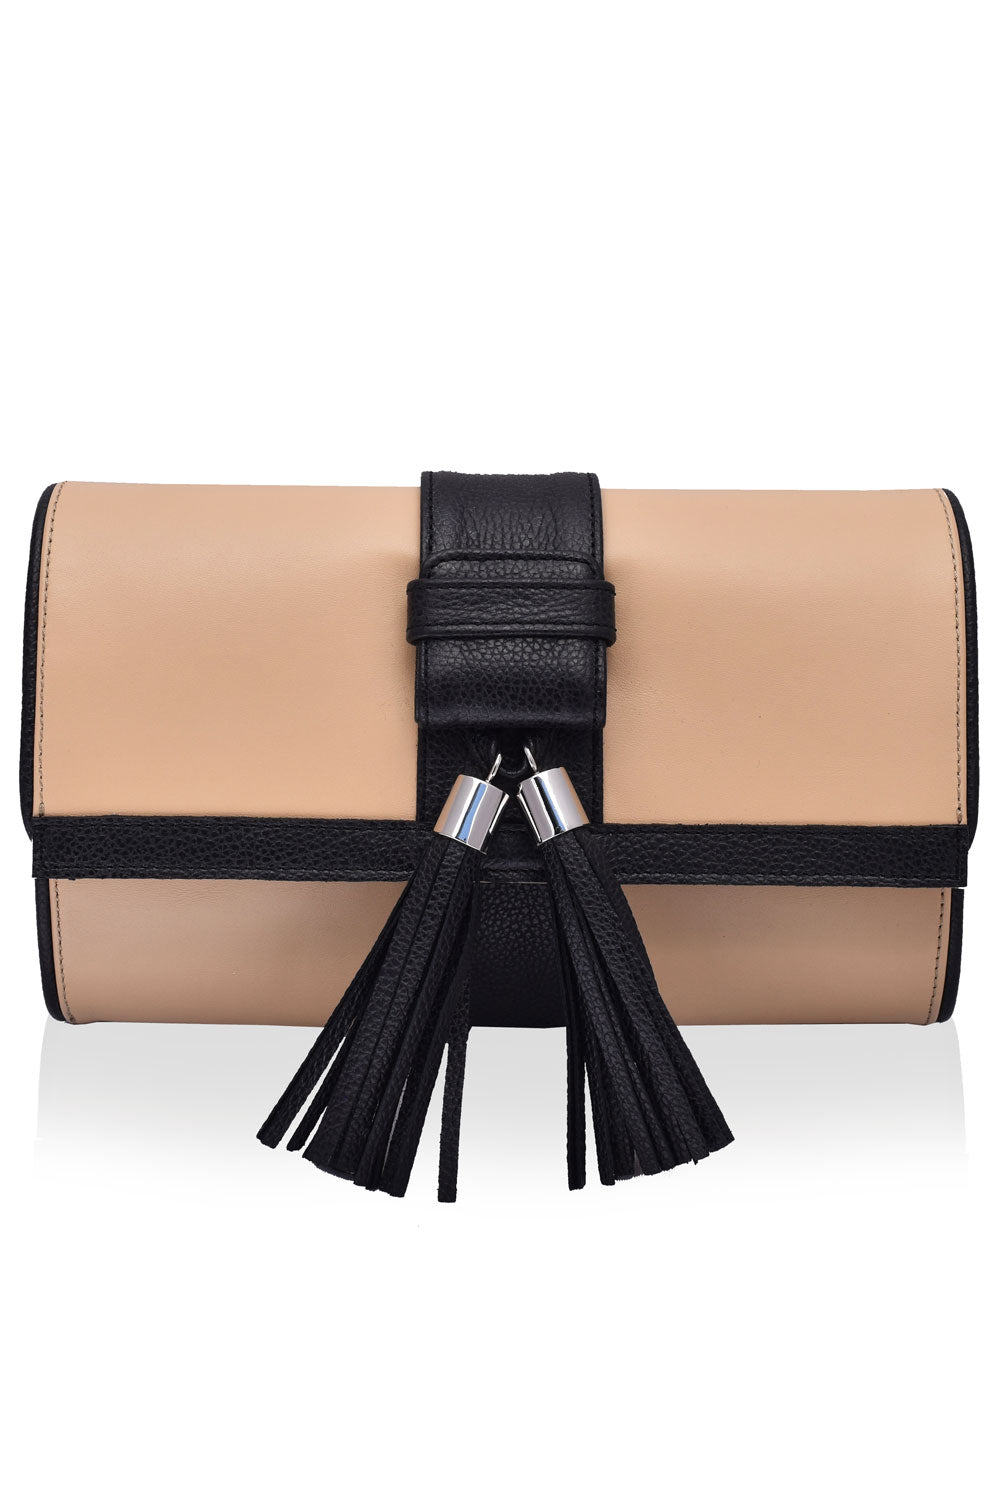 'Lauren' Camel & Black Leather Clutch and Shoulder Bag | Mel Boteri | Front View